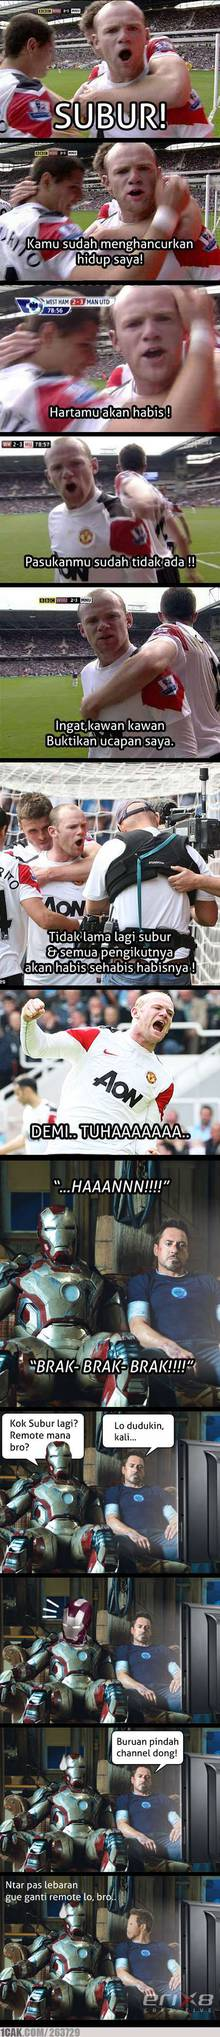 rooney wiguna vs subur demi wow